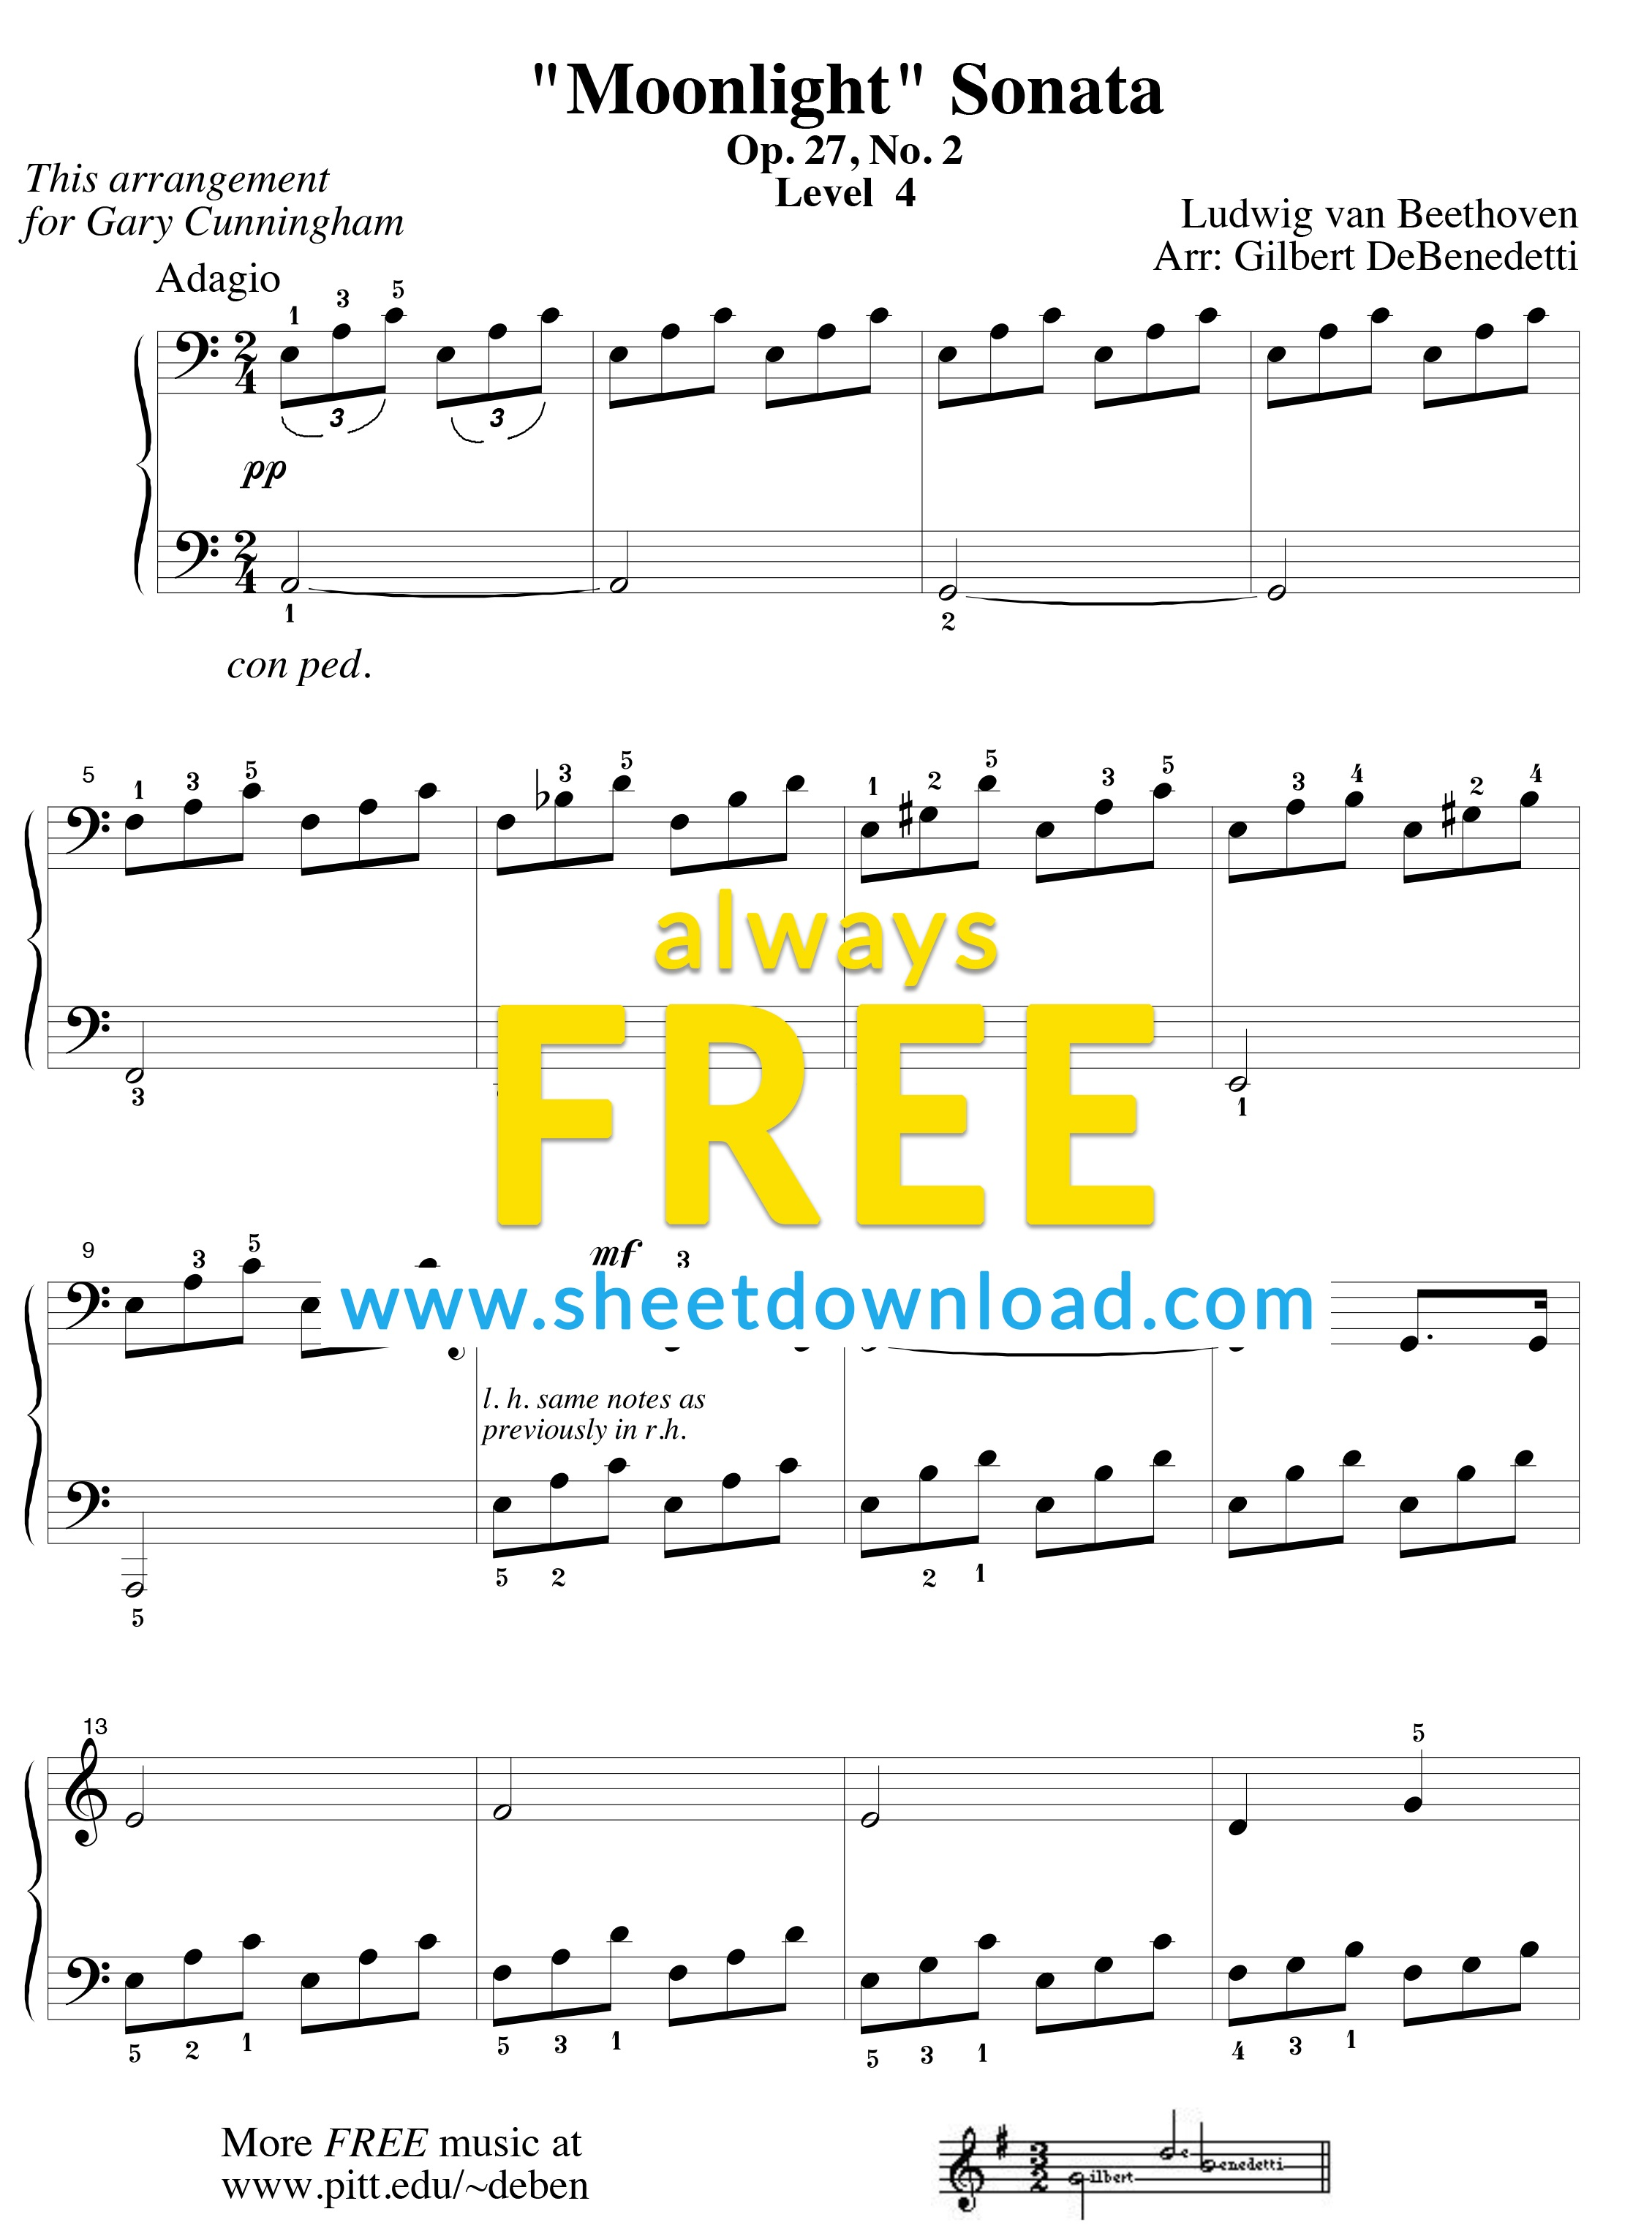 Free Piano Sheet Music To Download And Print - High Quality Pdfs - Free Printable Music Sheets Pdf